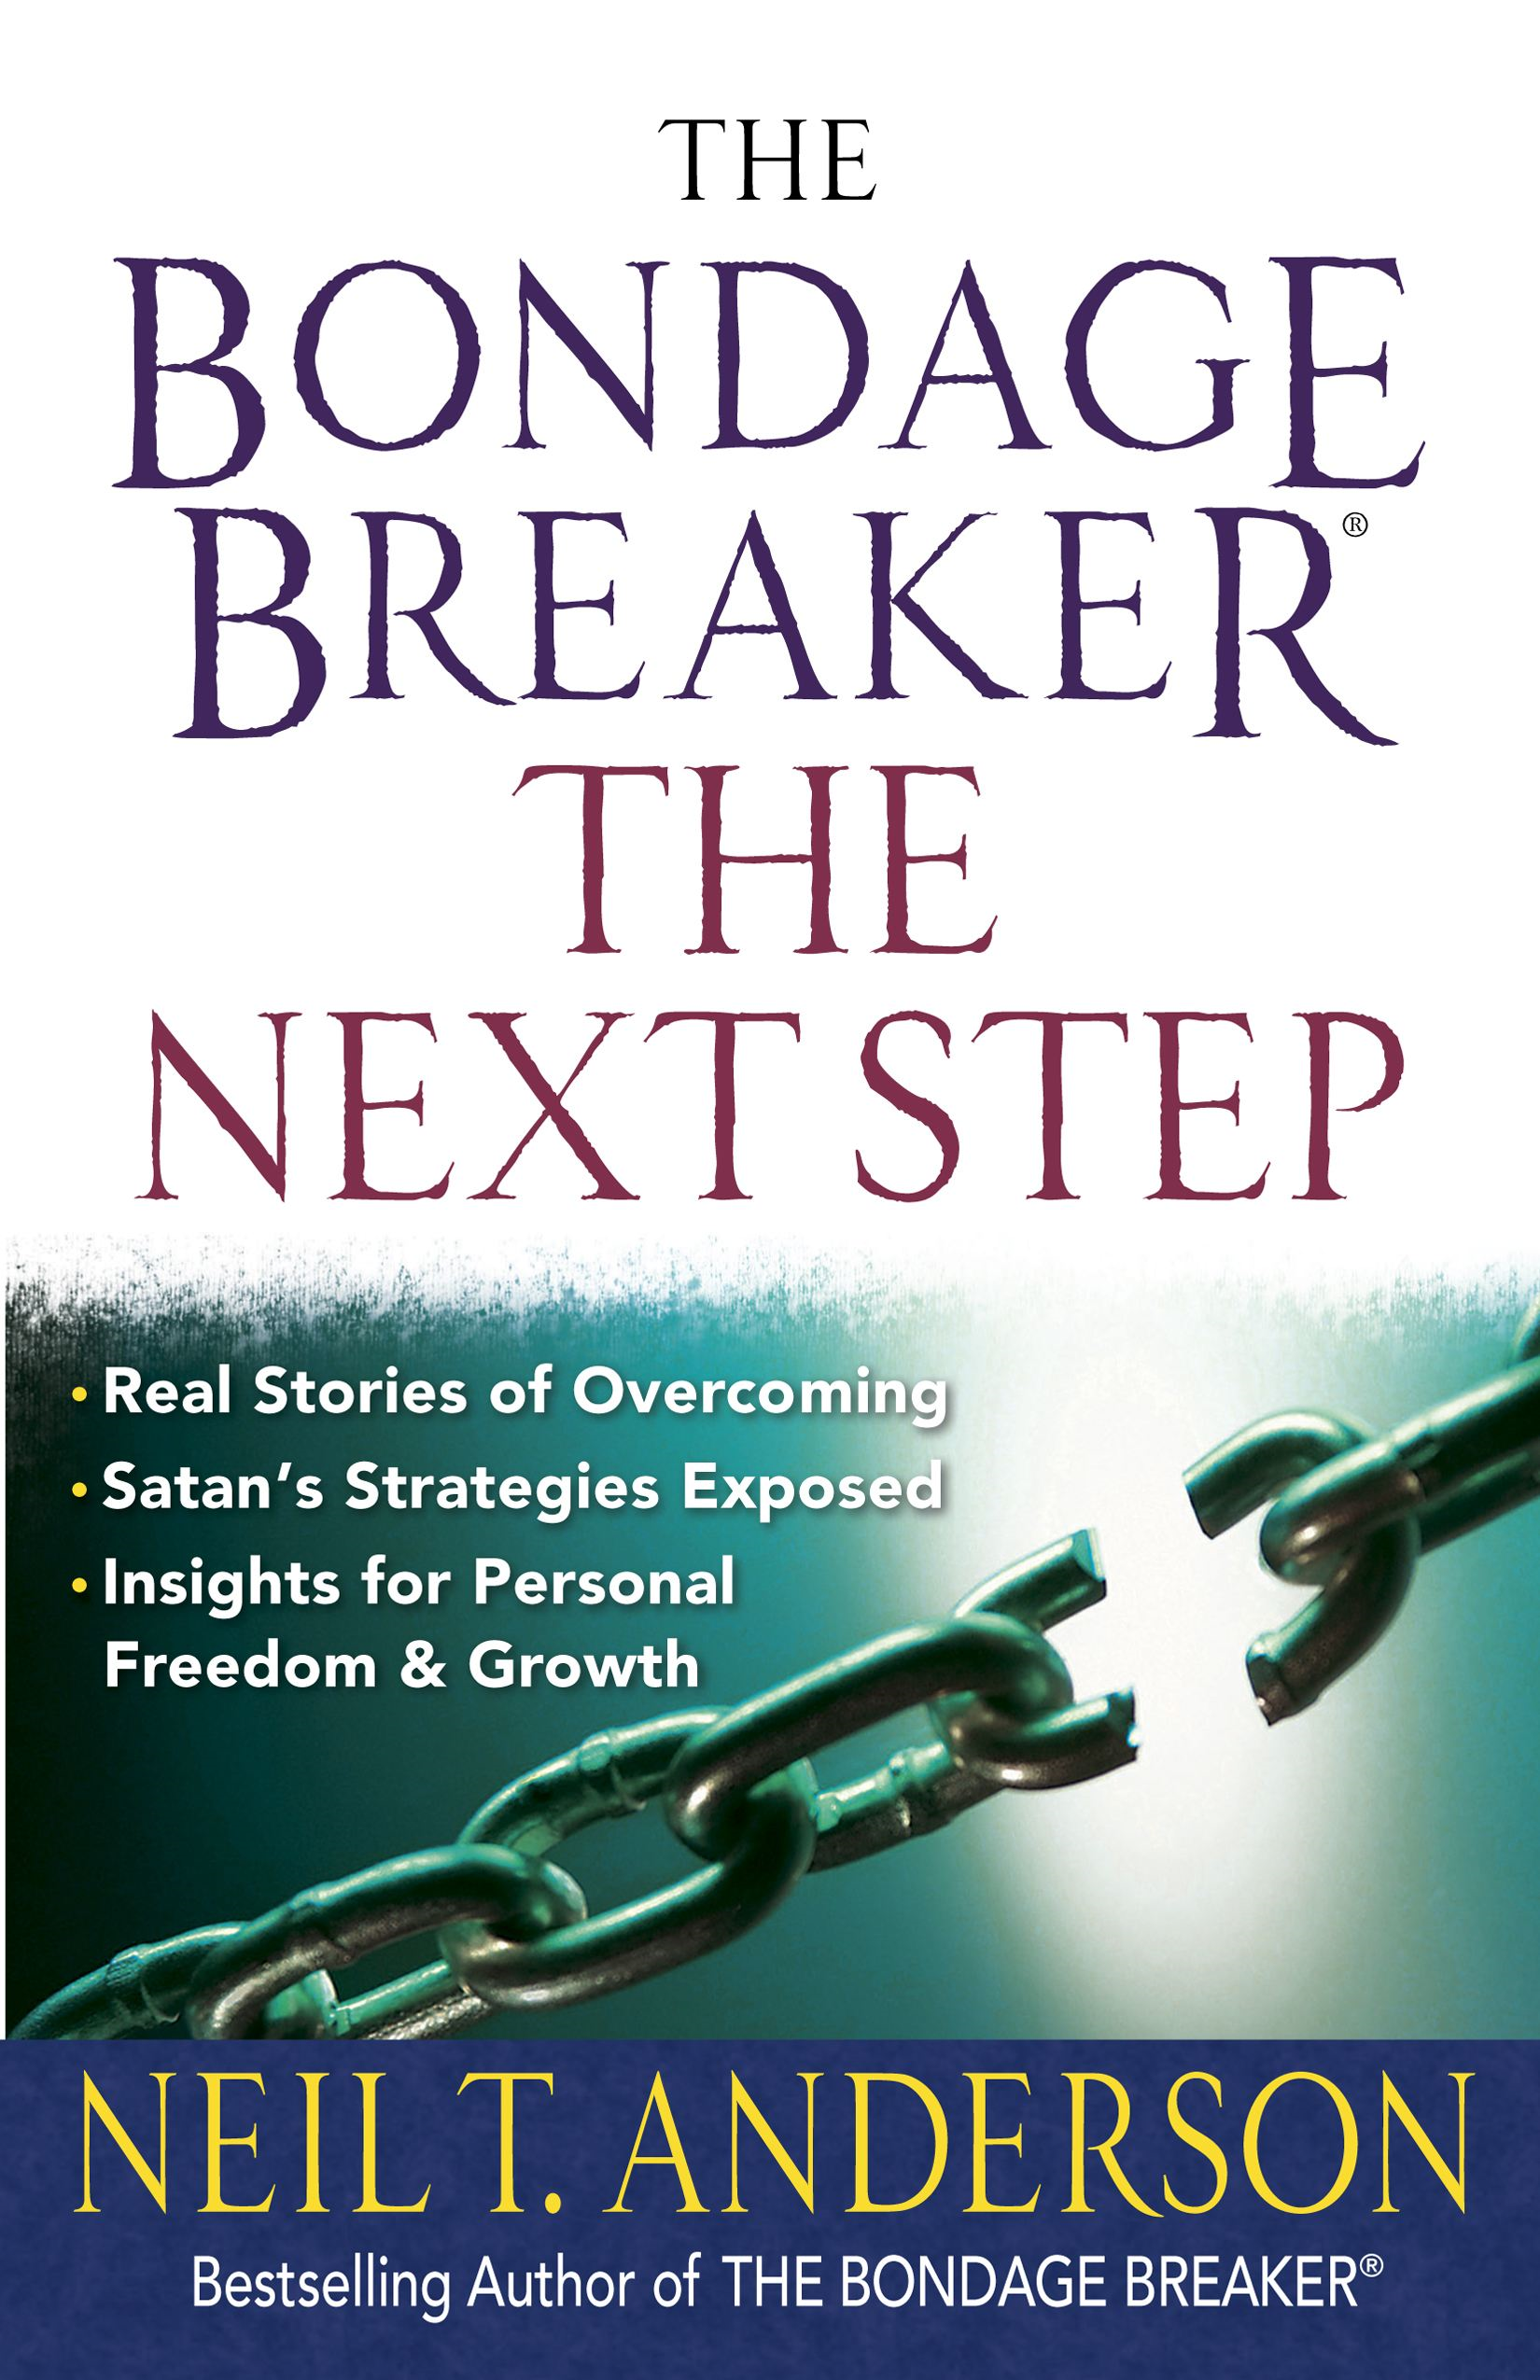 The Bondage Breaker® -- the Next Step By: Neil T. Anderson